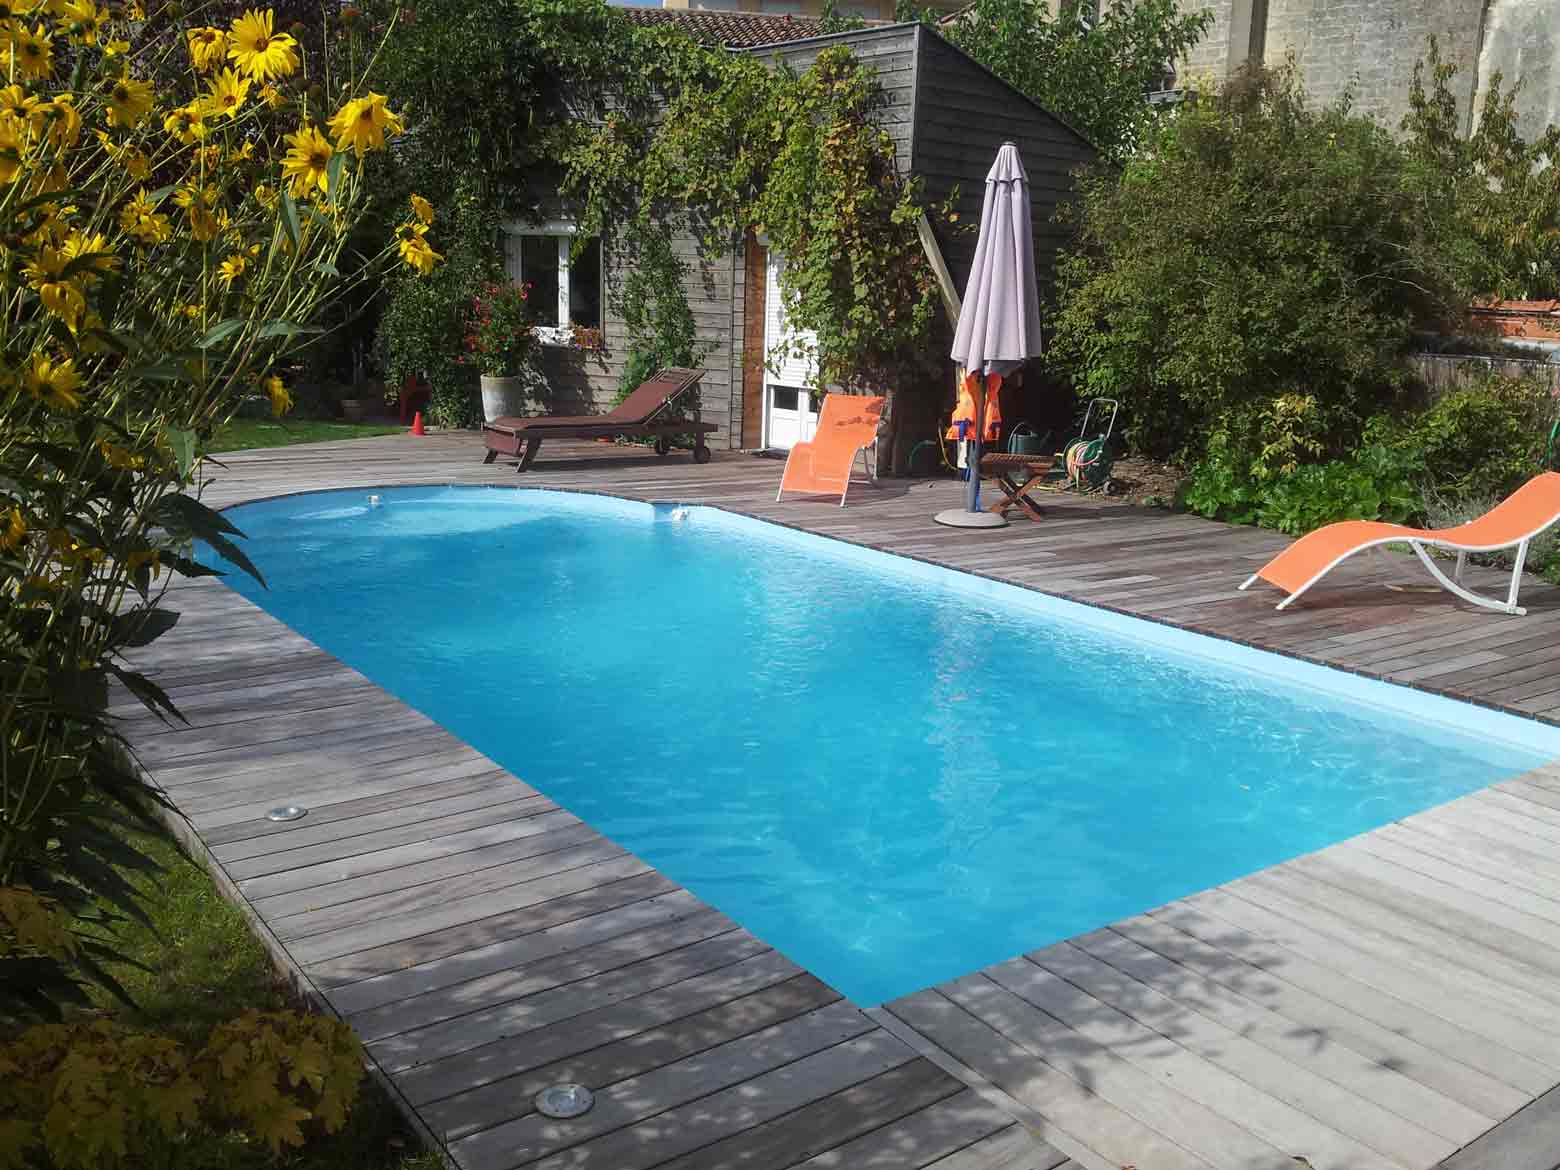 Comment hiverner une piscine coque for Piscine talence